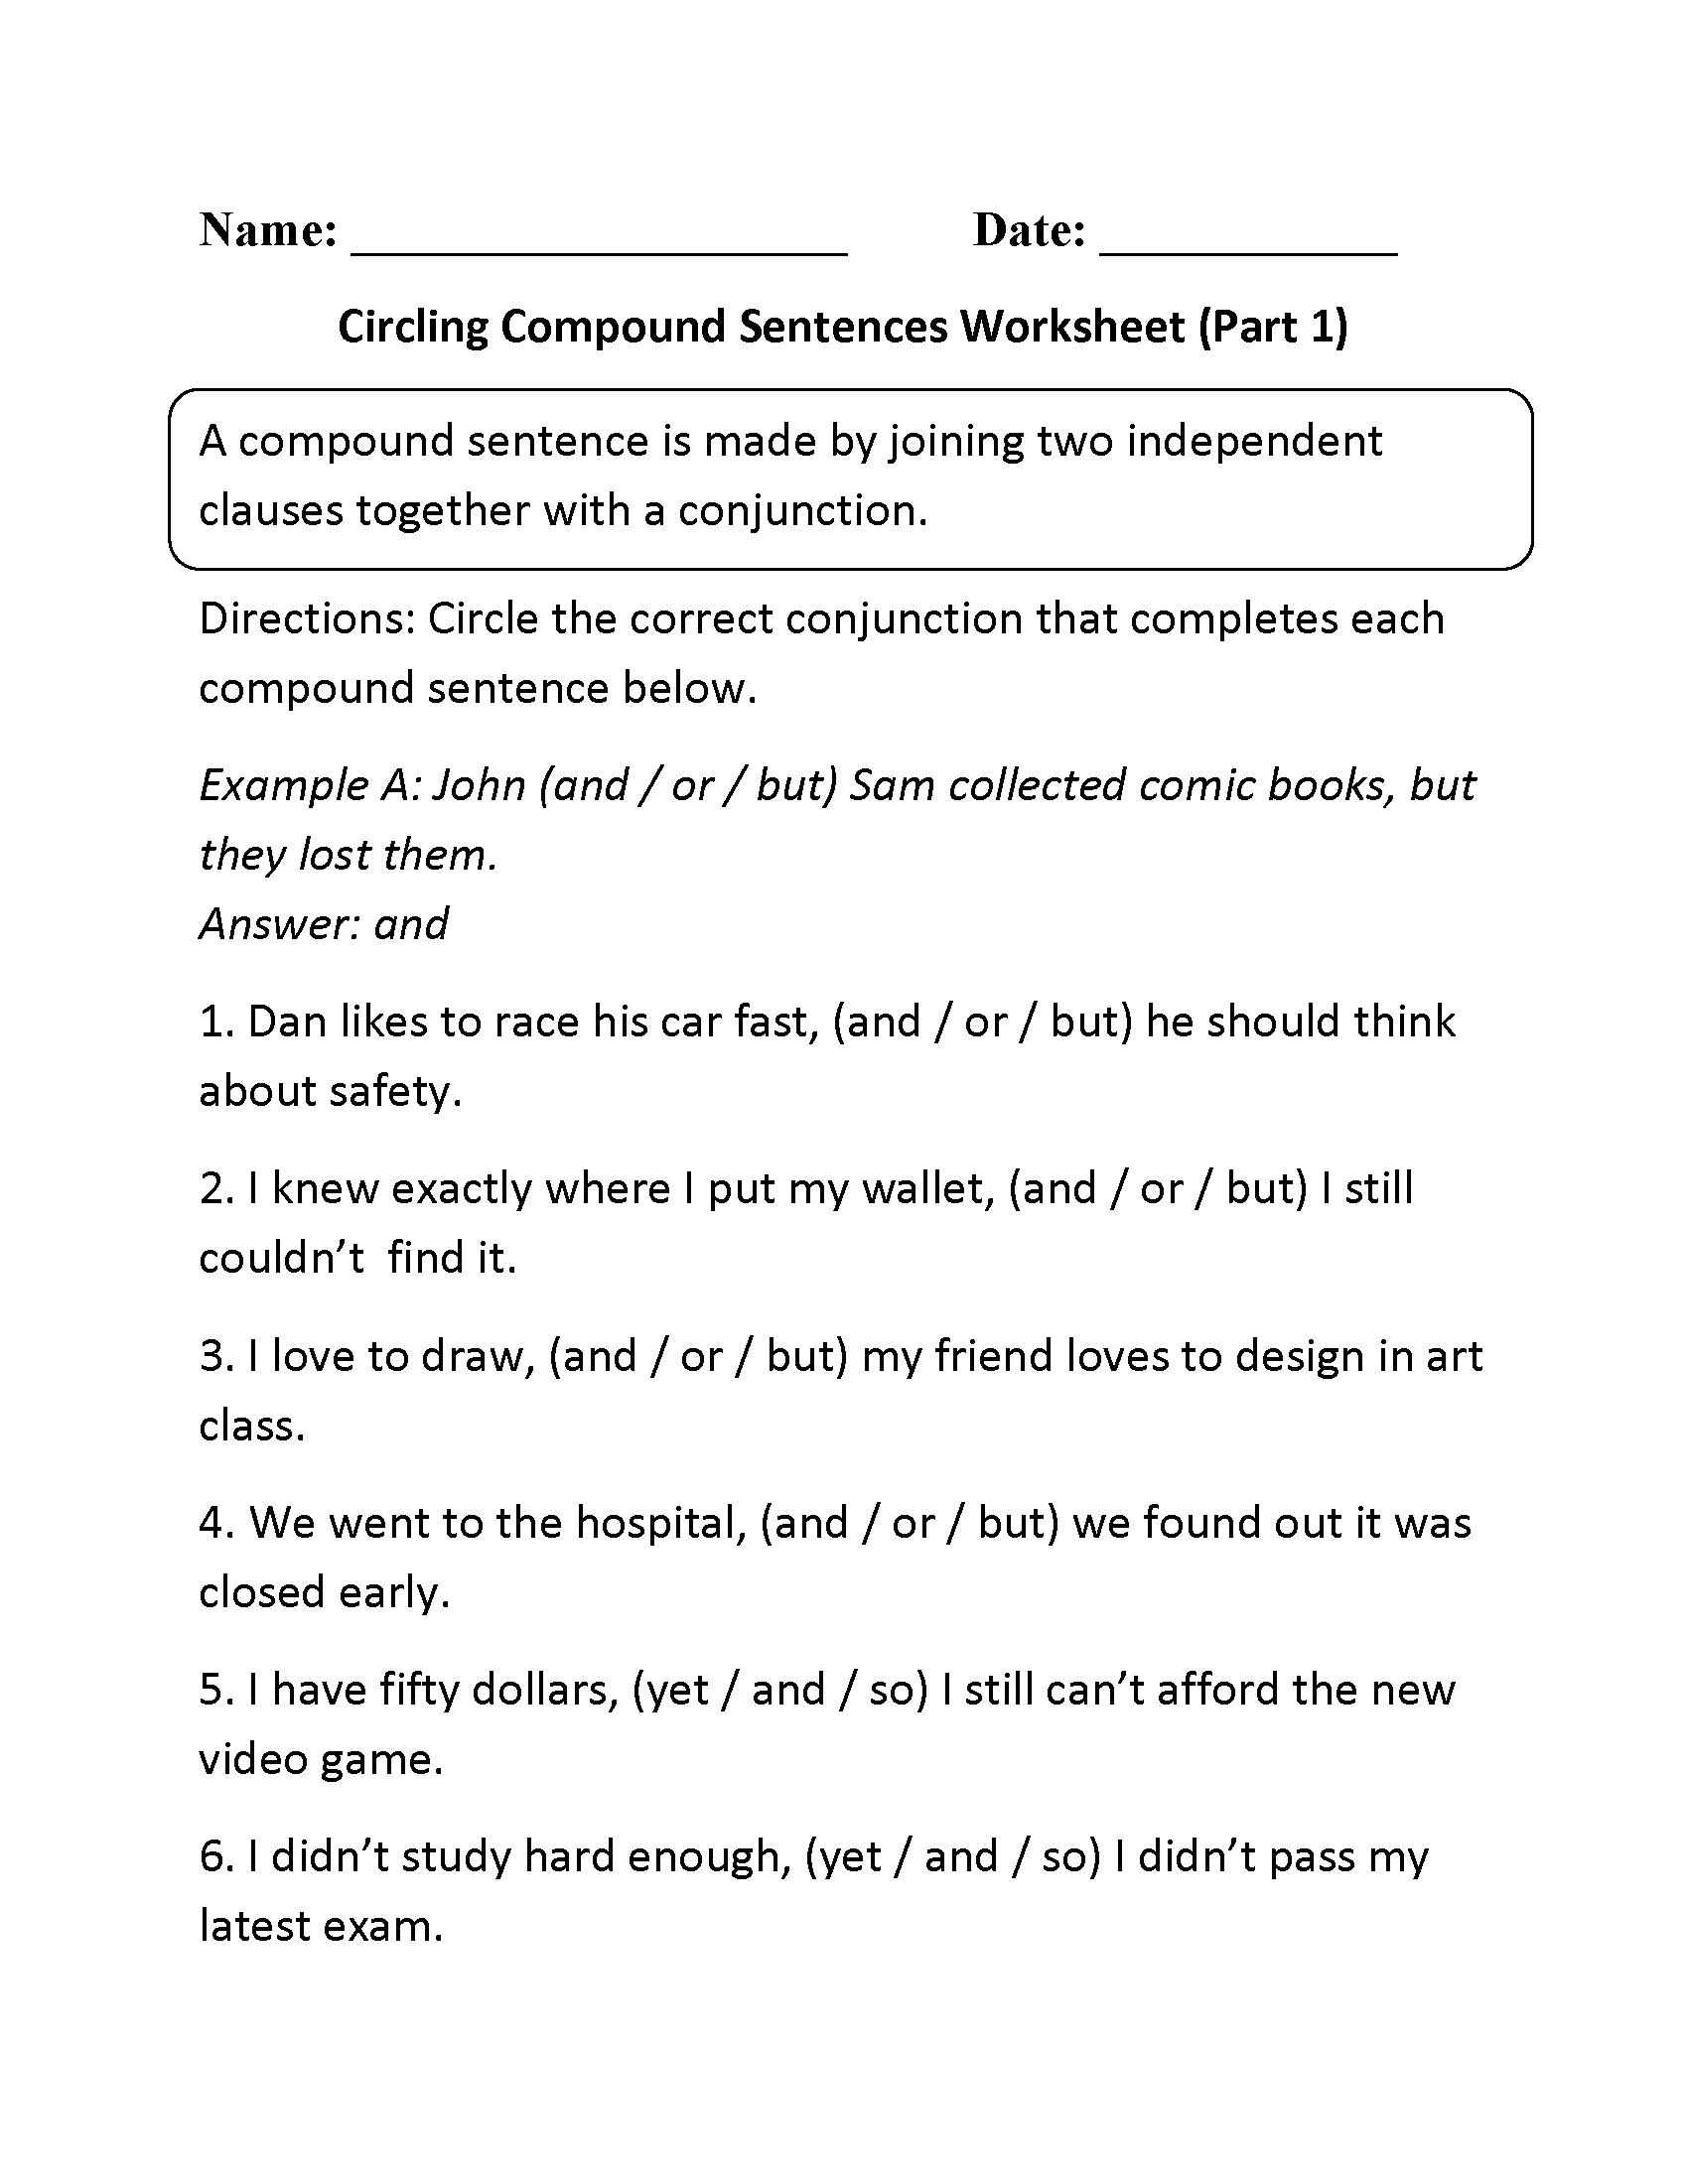 Compound Sentences Worksheet Part 1